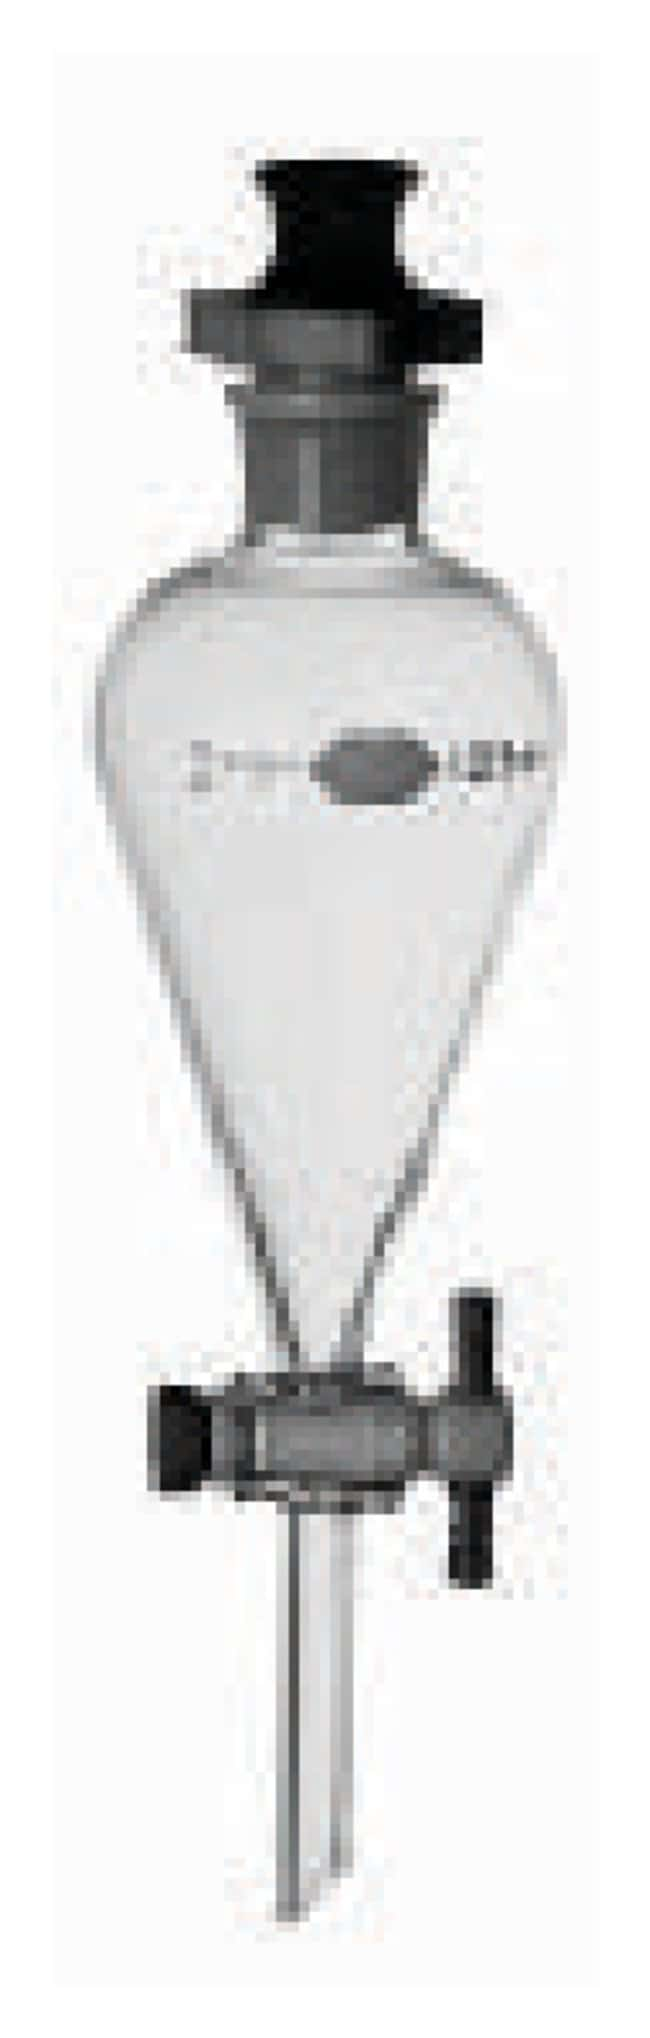 DWK Life SciencesKimble Kontes Squibb Separatory Funnel Only Funnel Only,